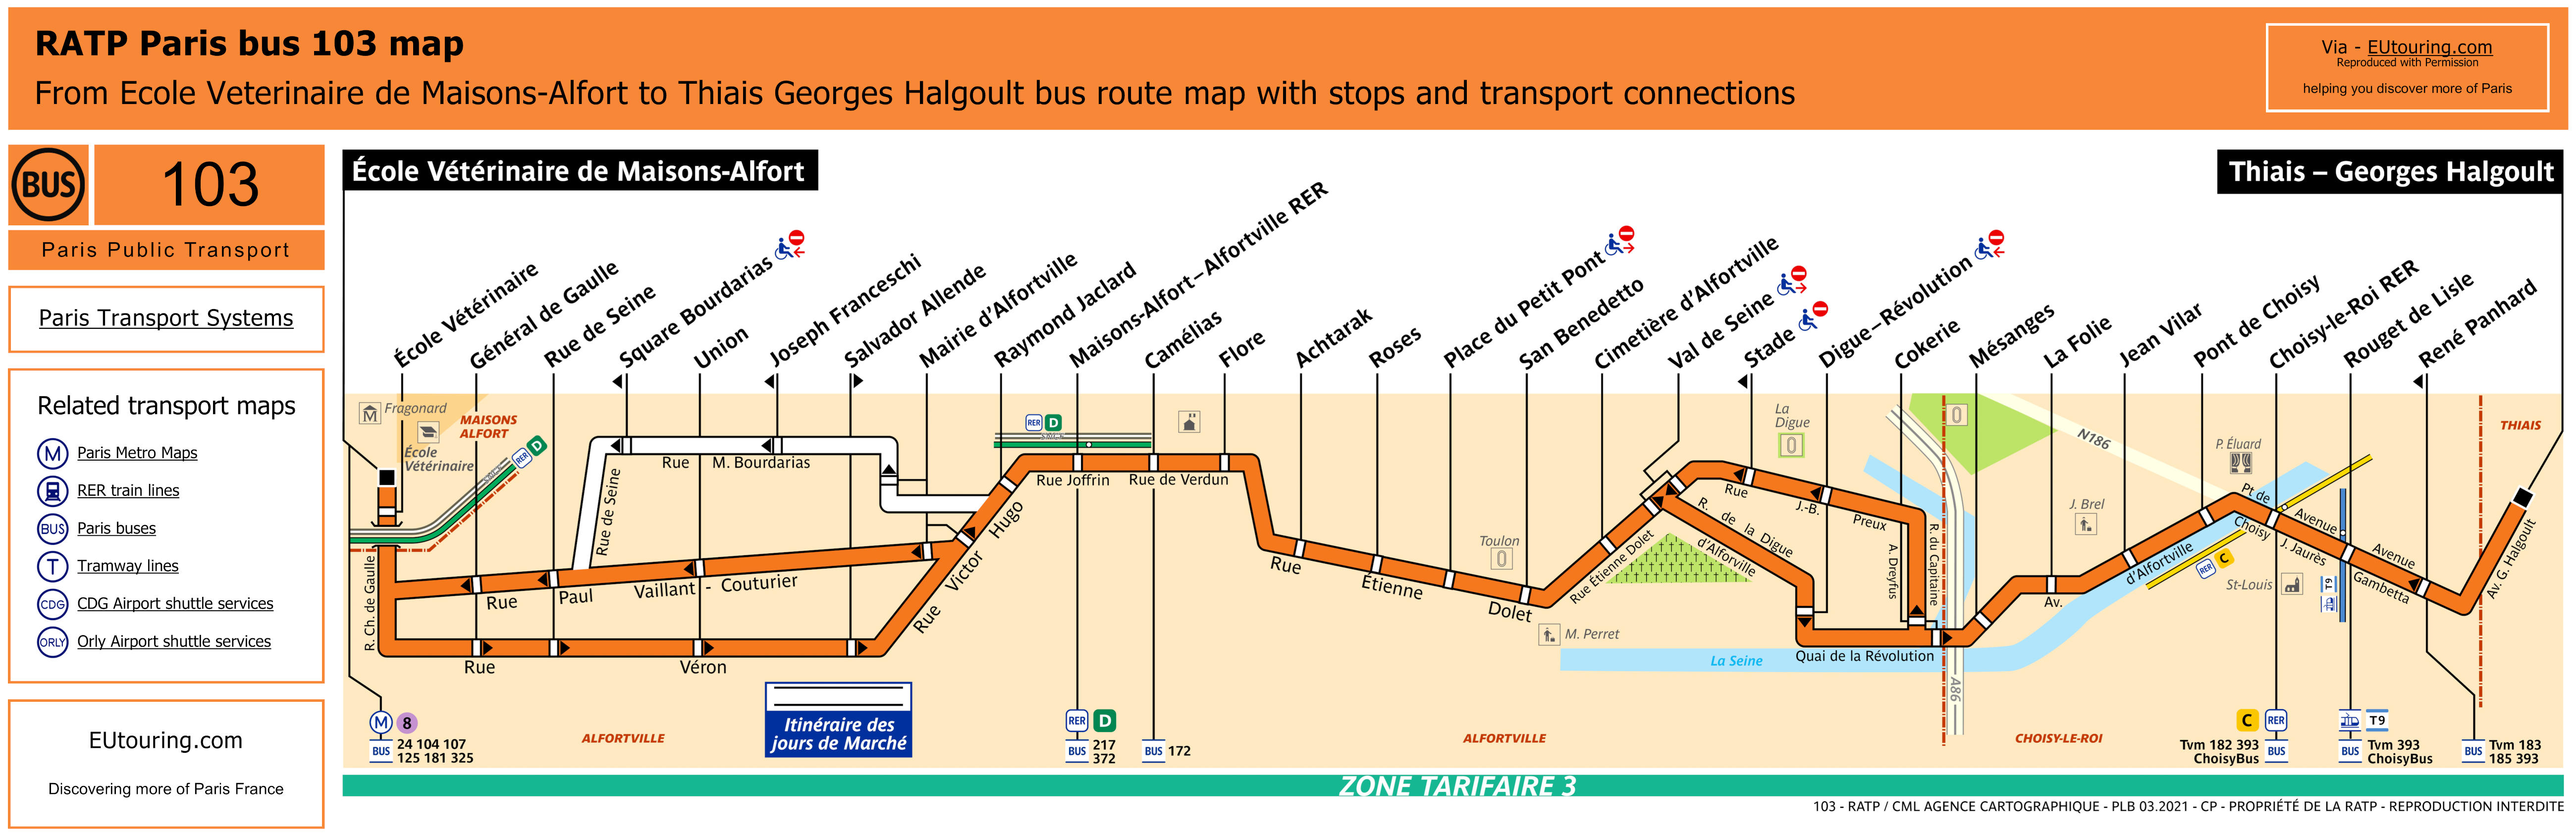 Paris Bus Maps And Timetables For Bus Lines 100 Through To